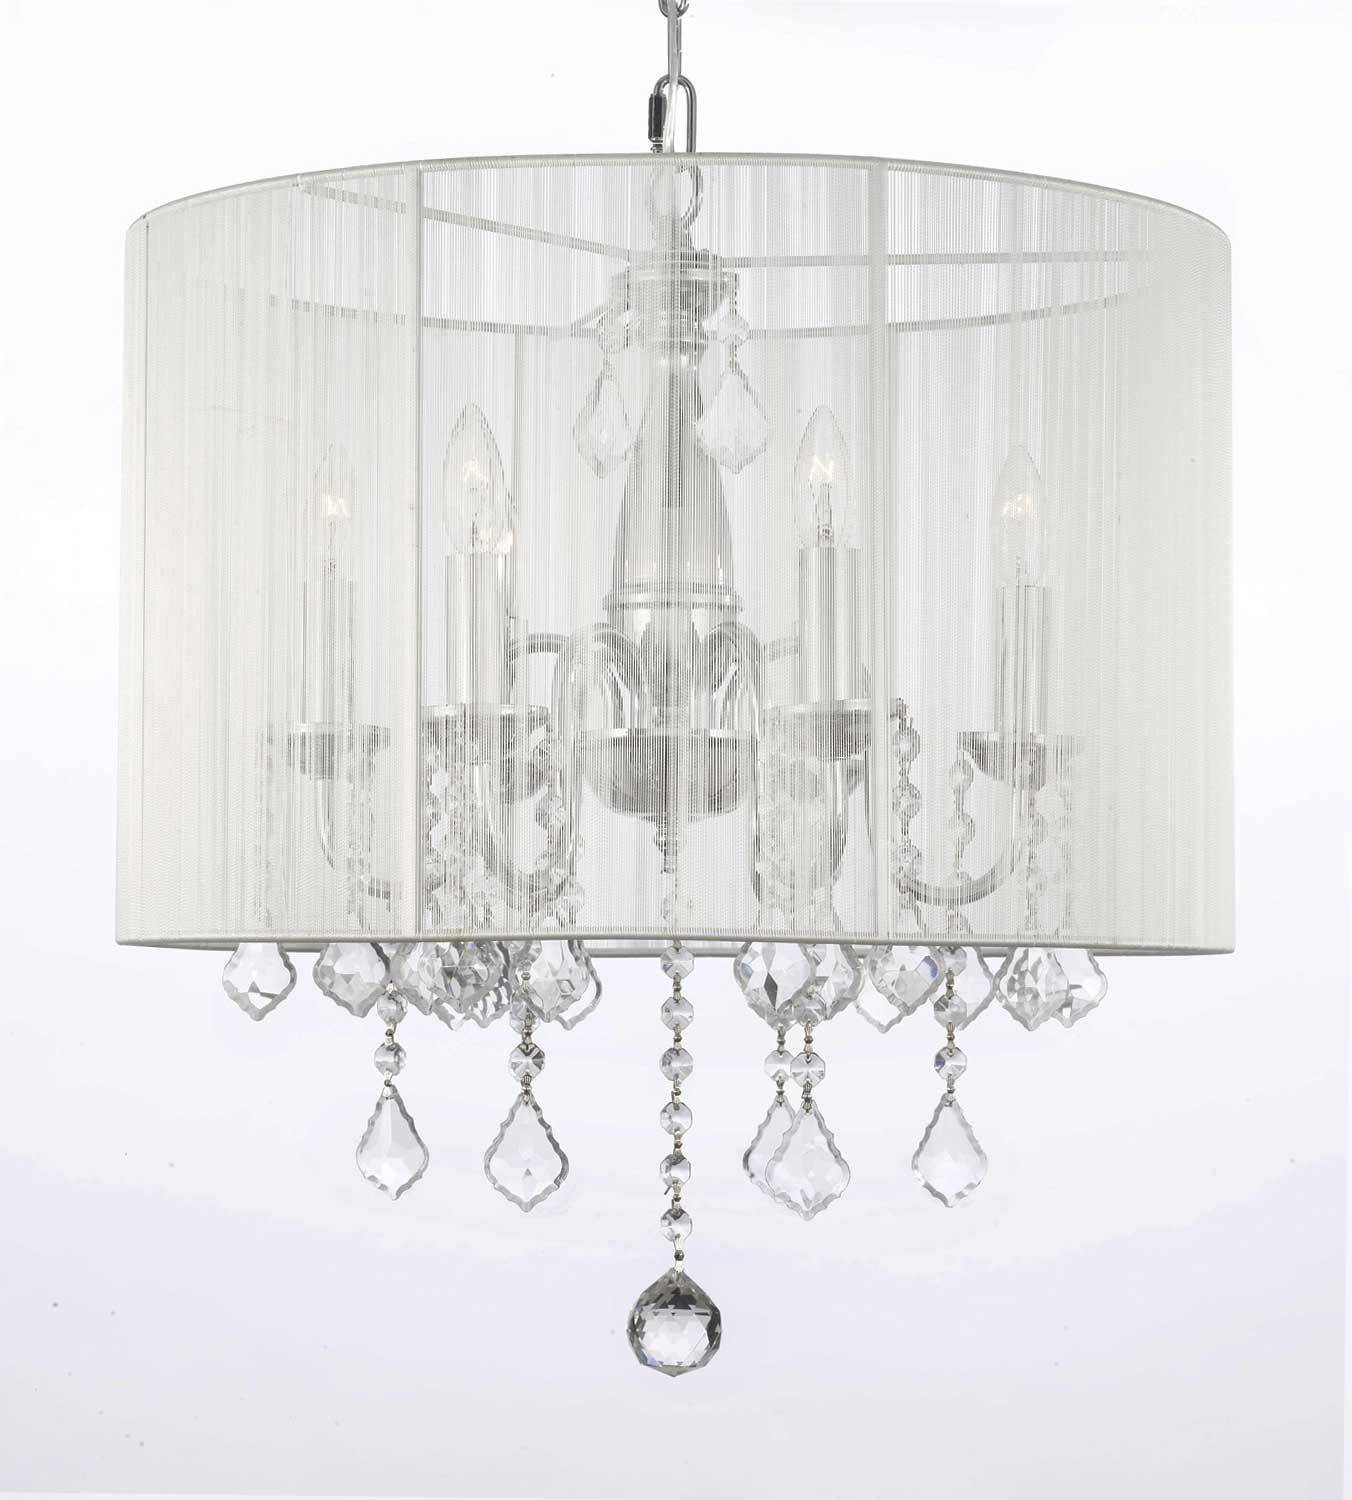 G Gallery Chandeliers With Shades CRYSTAL CHANDELIER WITH - Chandelier with shades and crystals